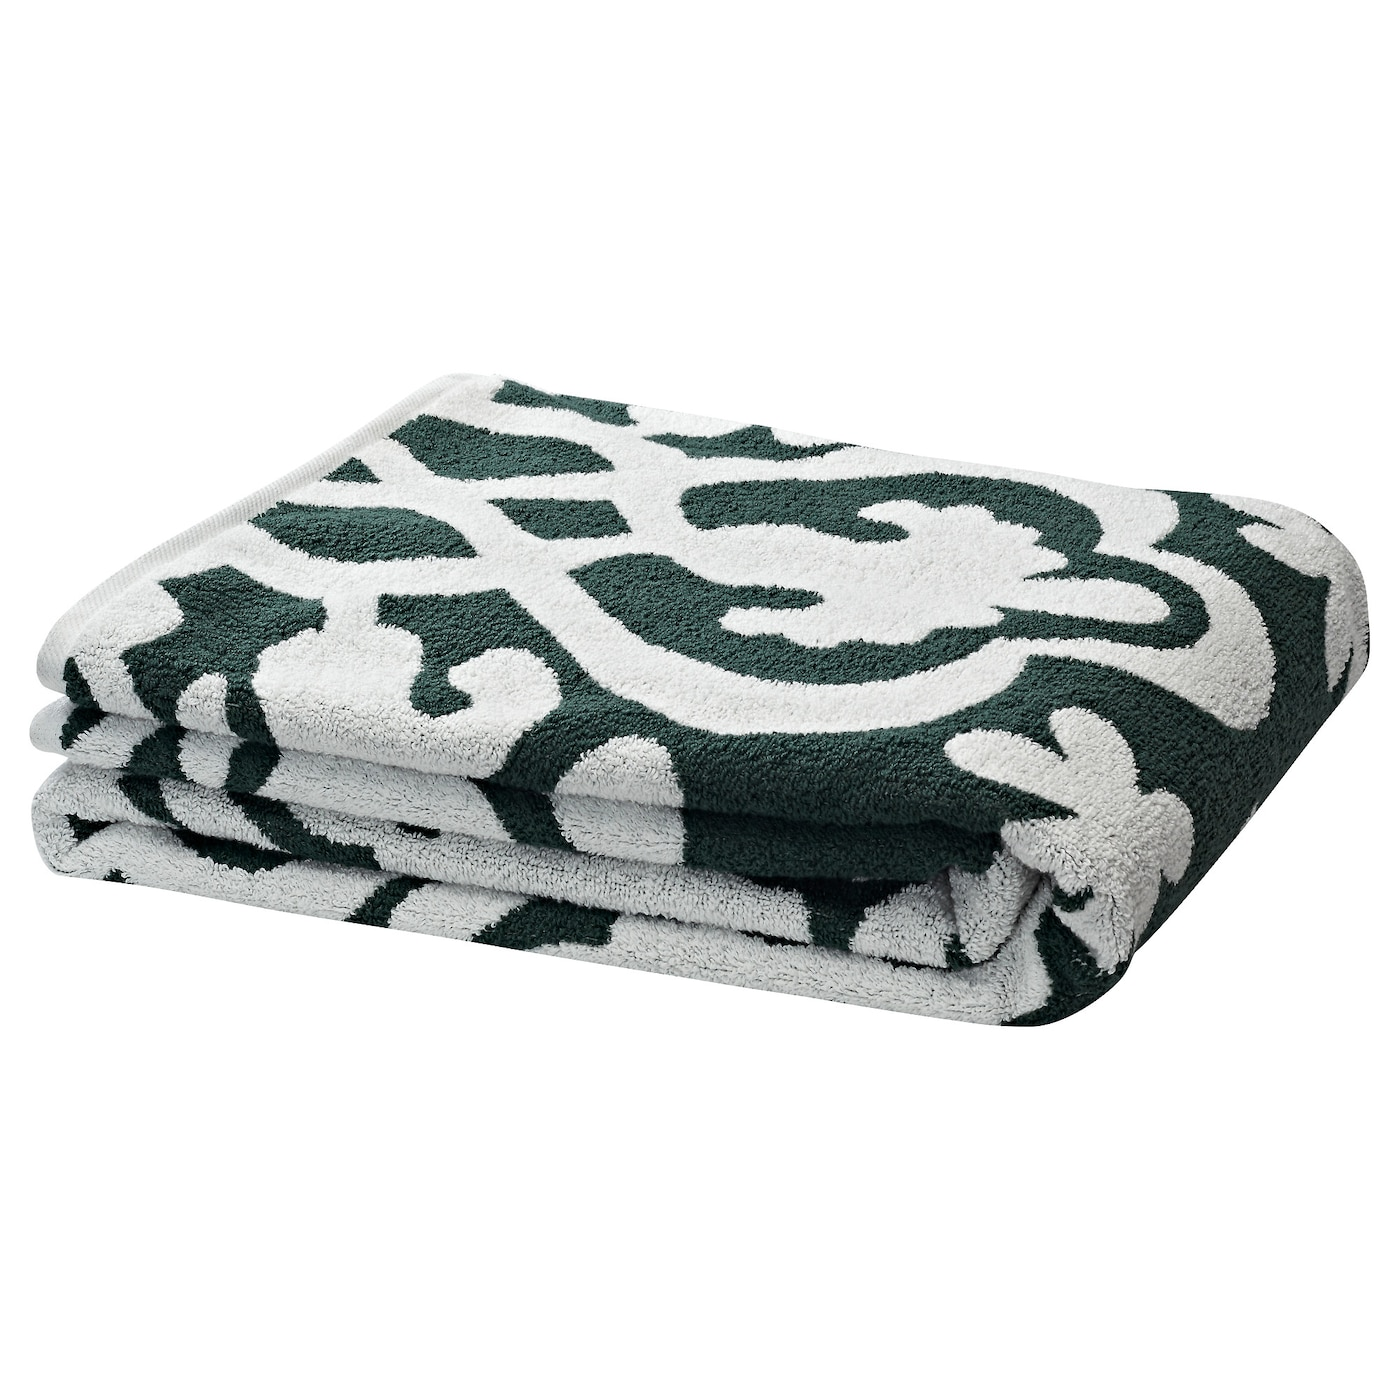 IKEA BLÄDJAN bath sheet The long, fine fibres of combed cotton create a soft and durable towel.